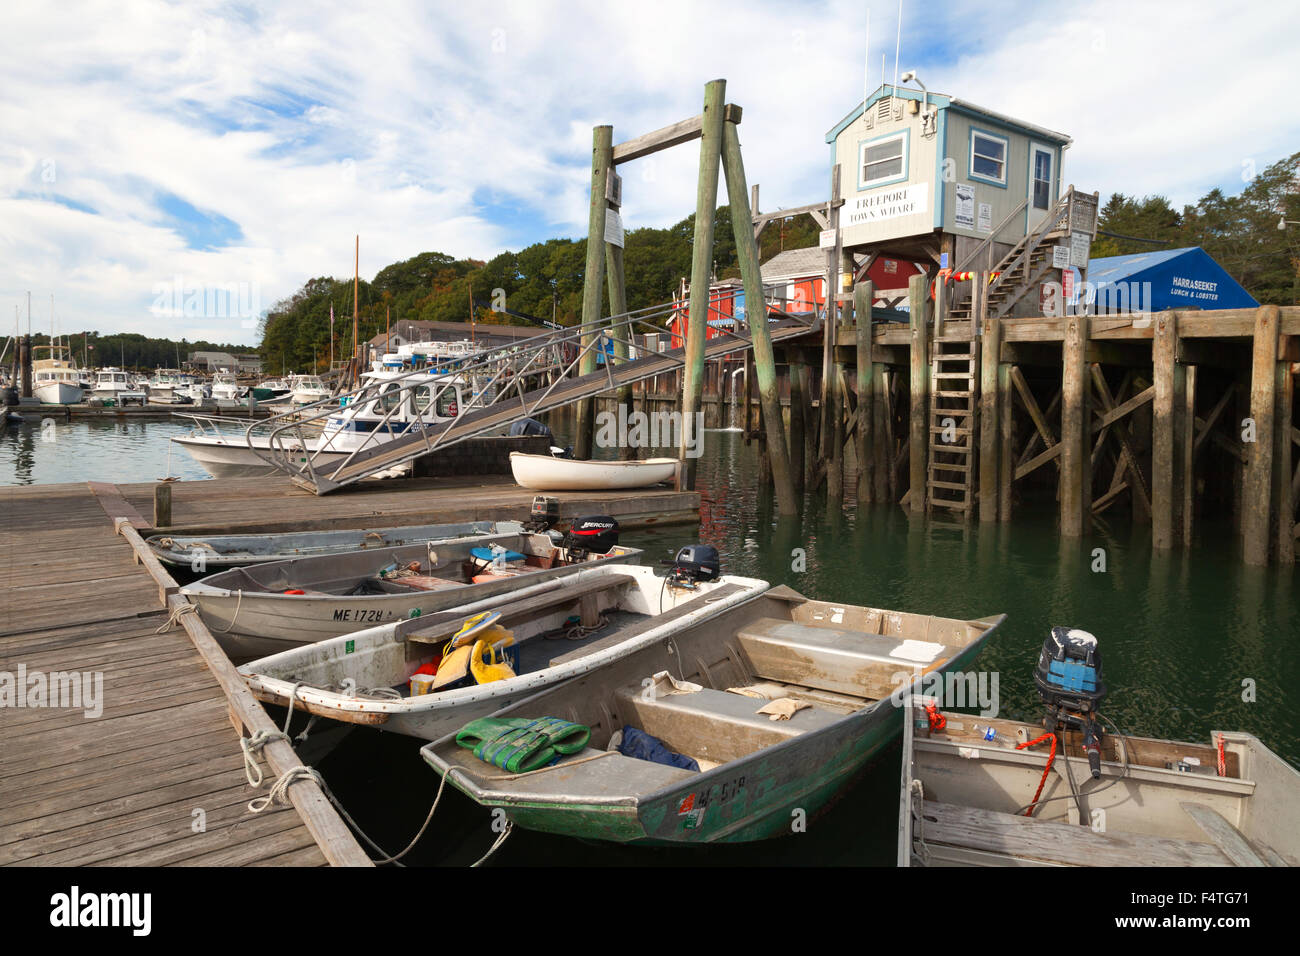 Boats moored in Freeport Harbor on the Harraseeket River, Freeport, Maine USA - Stock Image